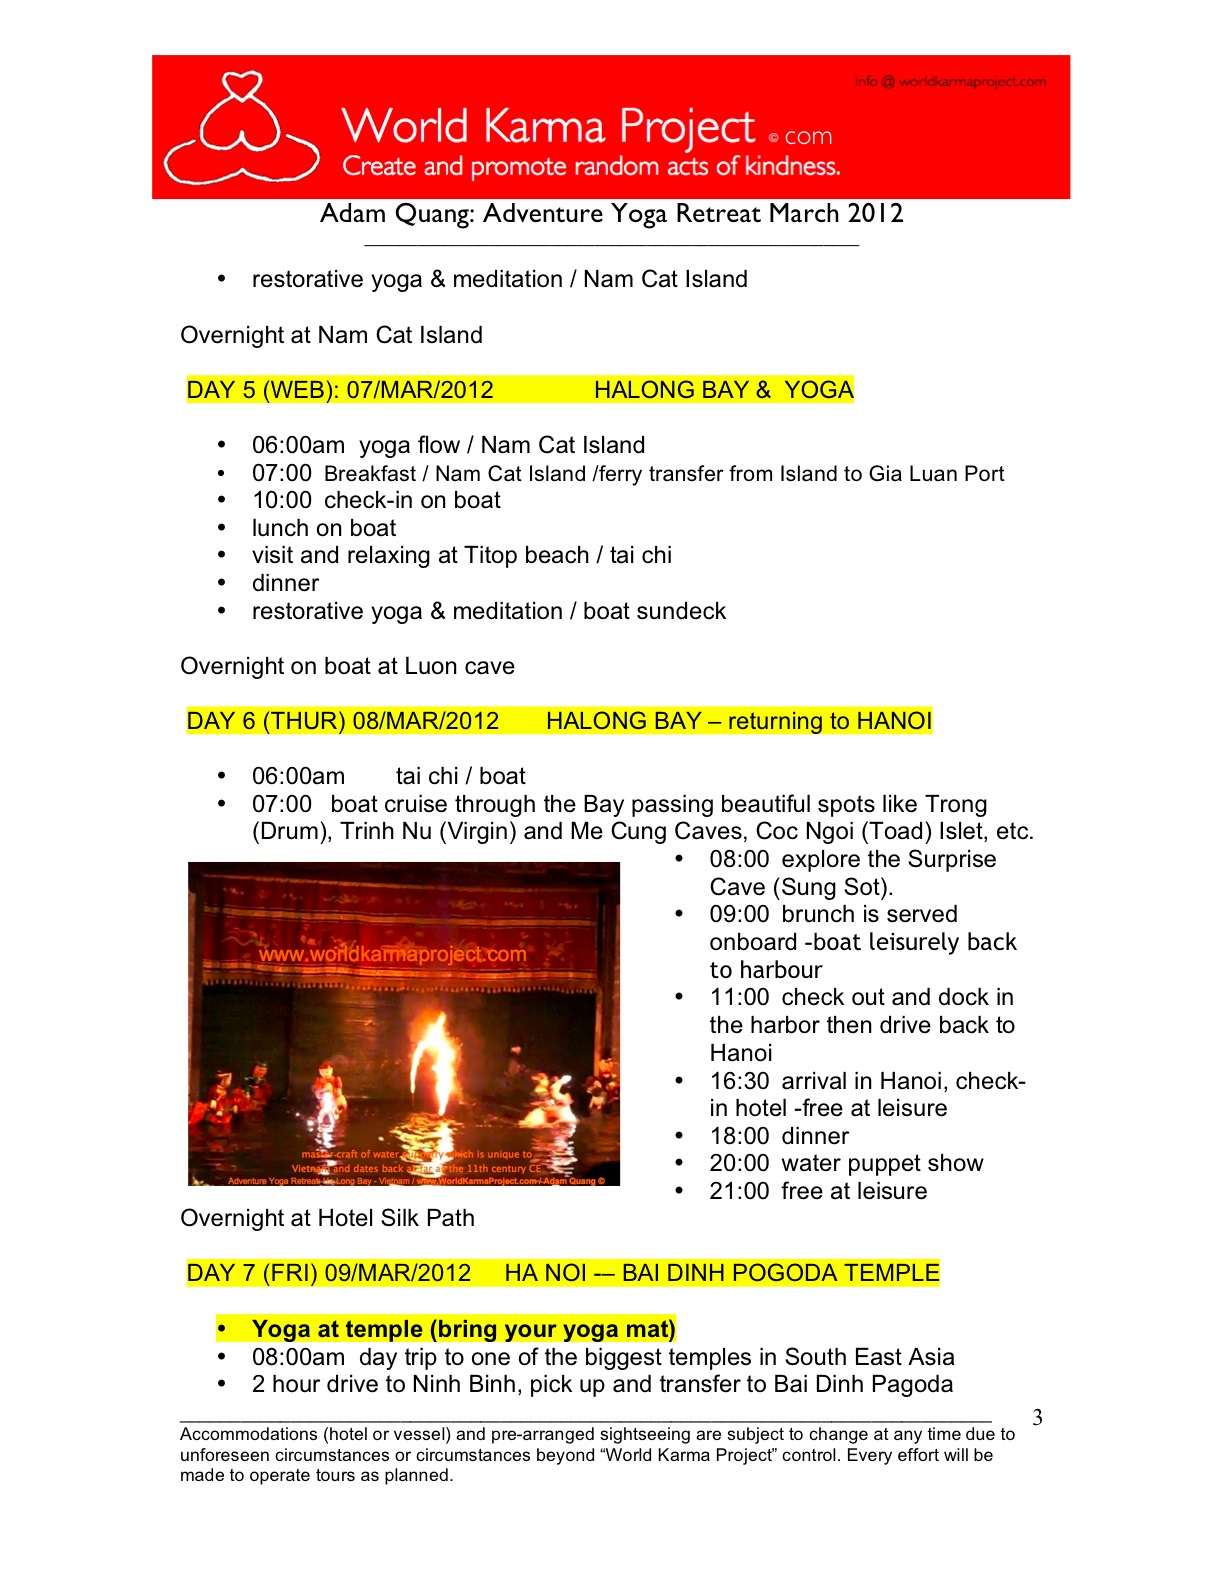 3-Adventure yoga retreat - Halong bay Tour itinerary -Mar_3-17_2012 -Edit JC